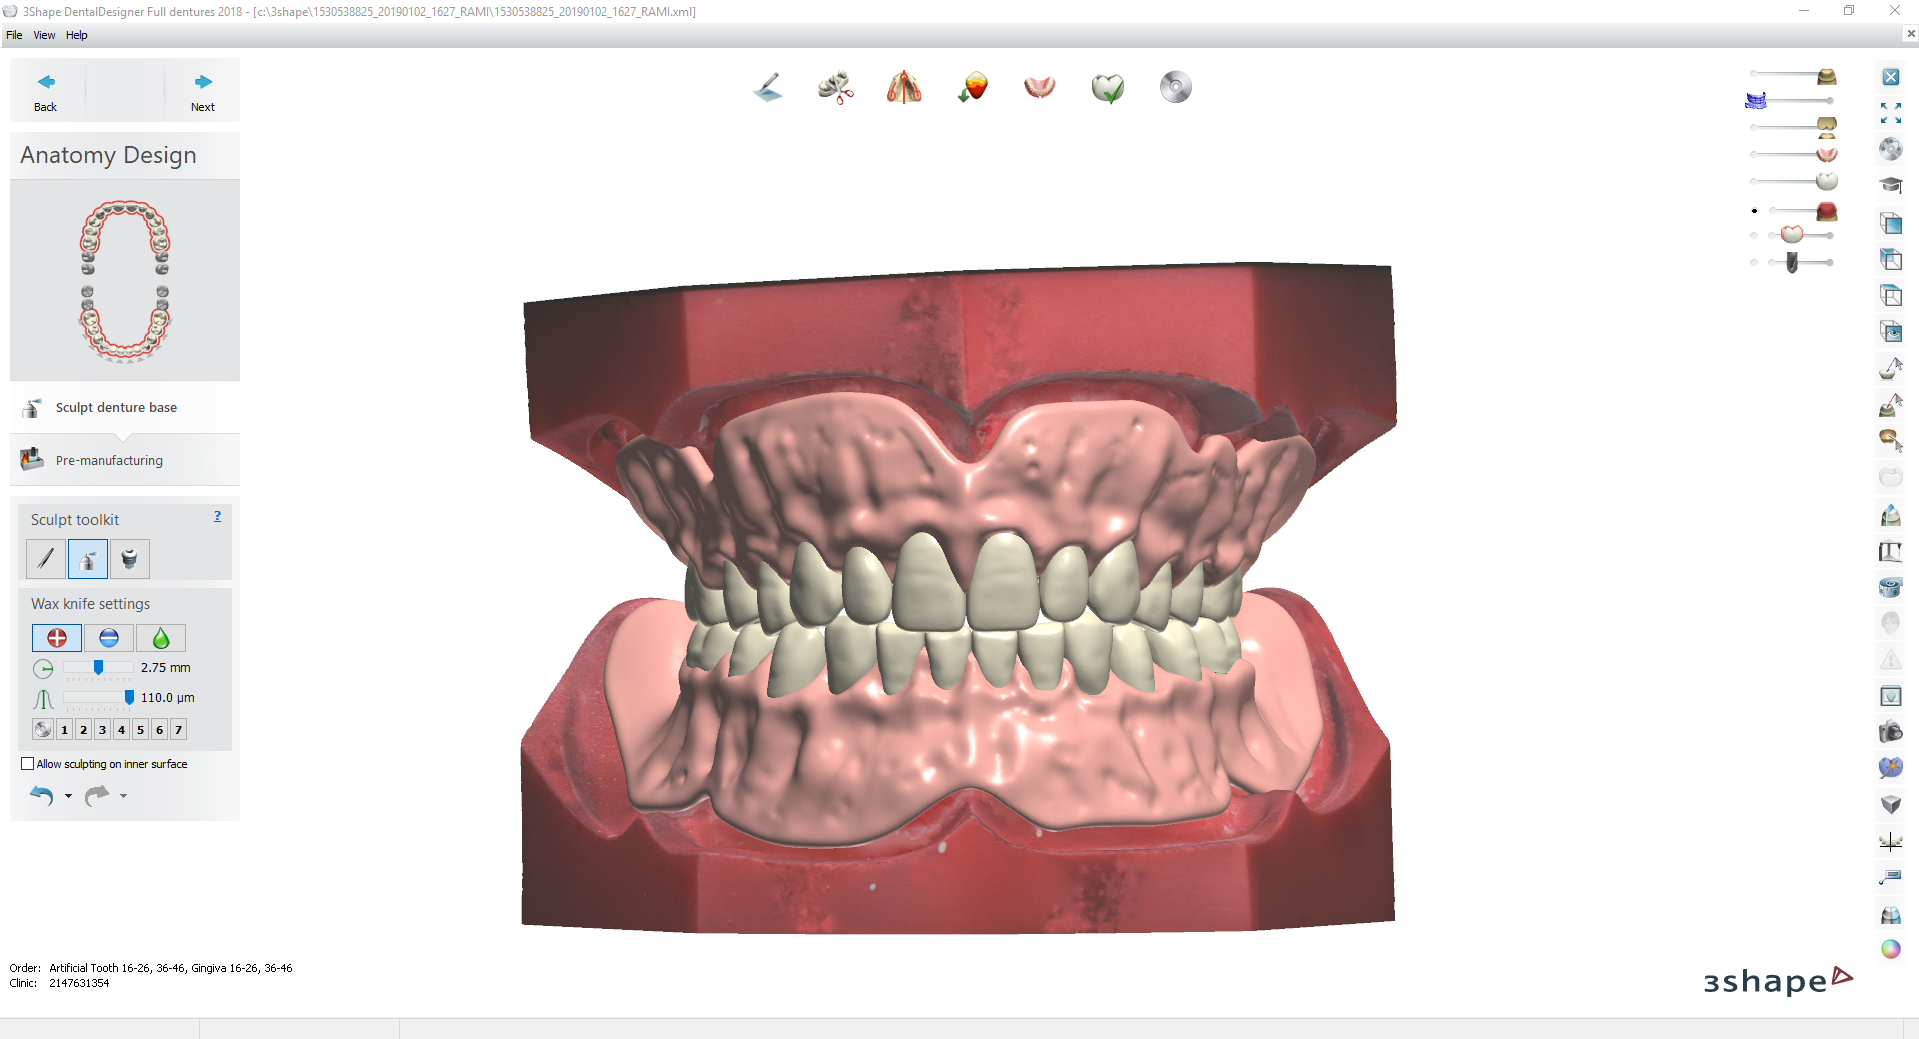 Digital Try-in Full Dentures for Injection Molding @ Pinshape